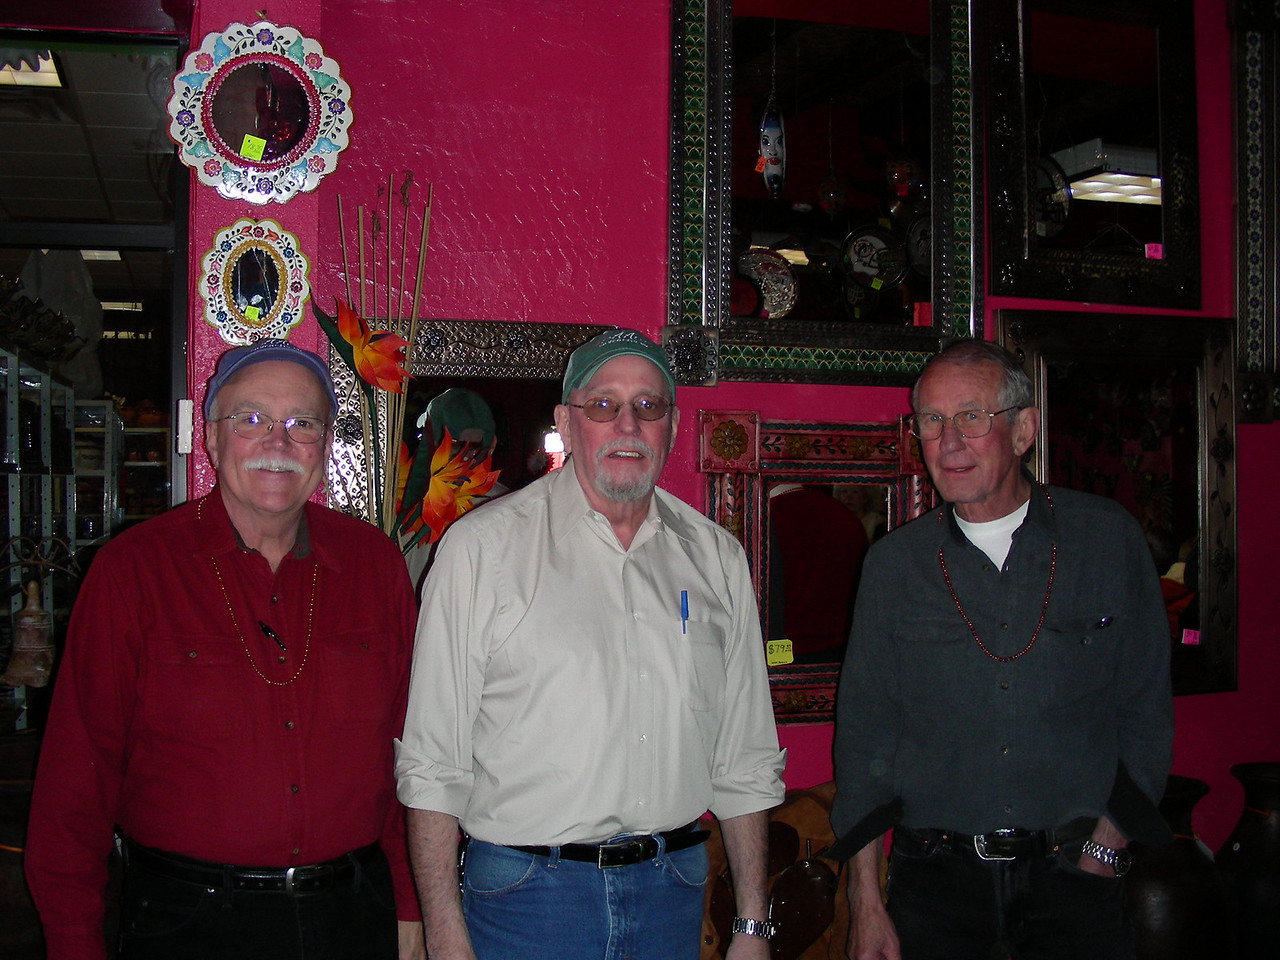 Bob, Bruce and Dale, the owner's of Issac's in Silver City at The Pink Store, Las Palomas | 2/12/2010